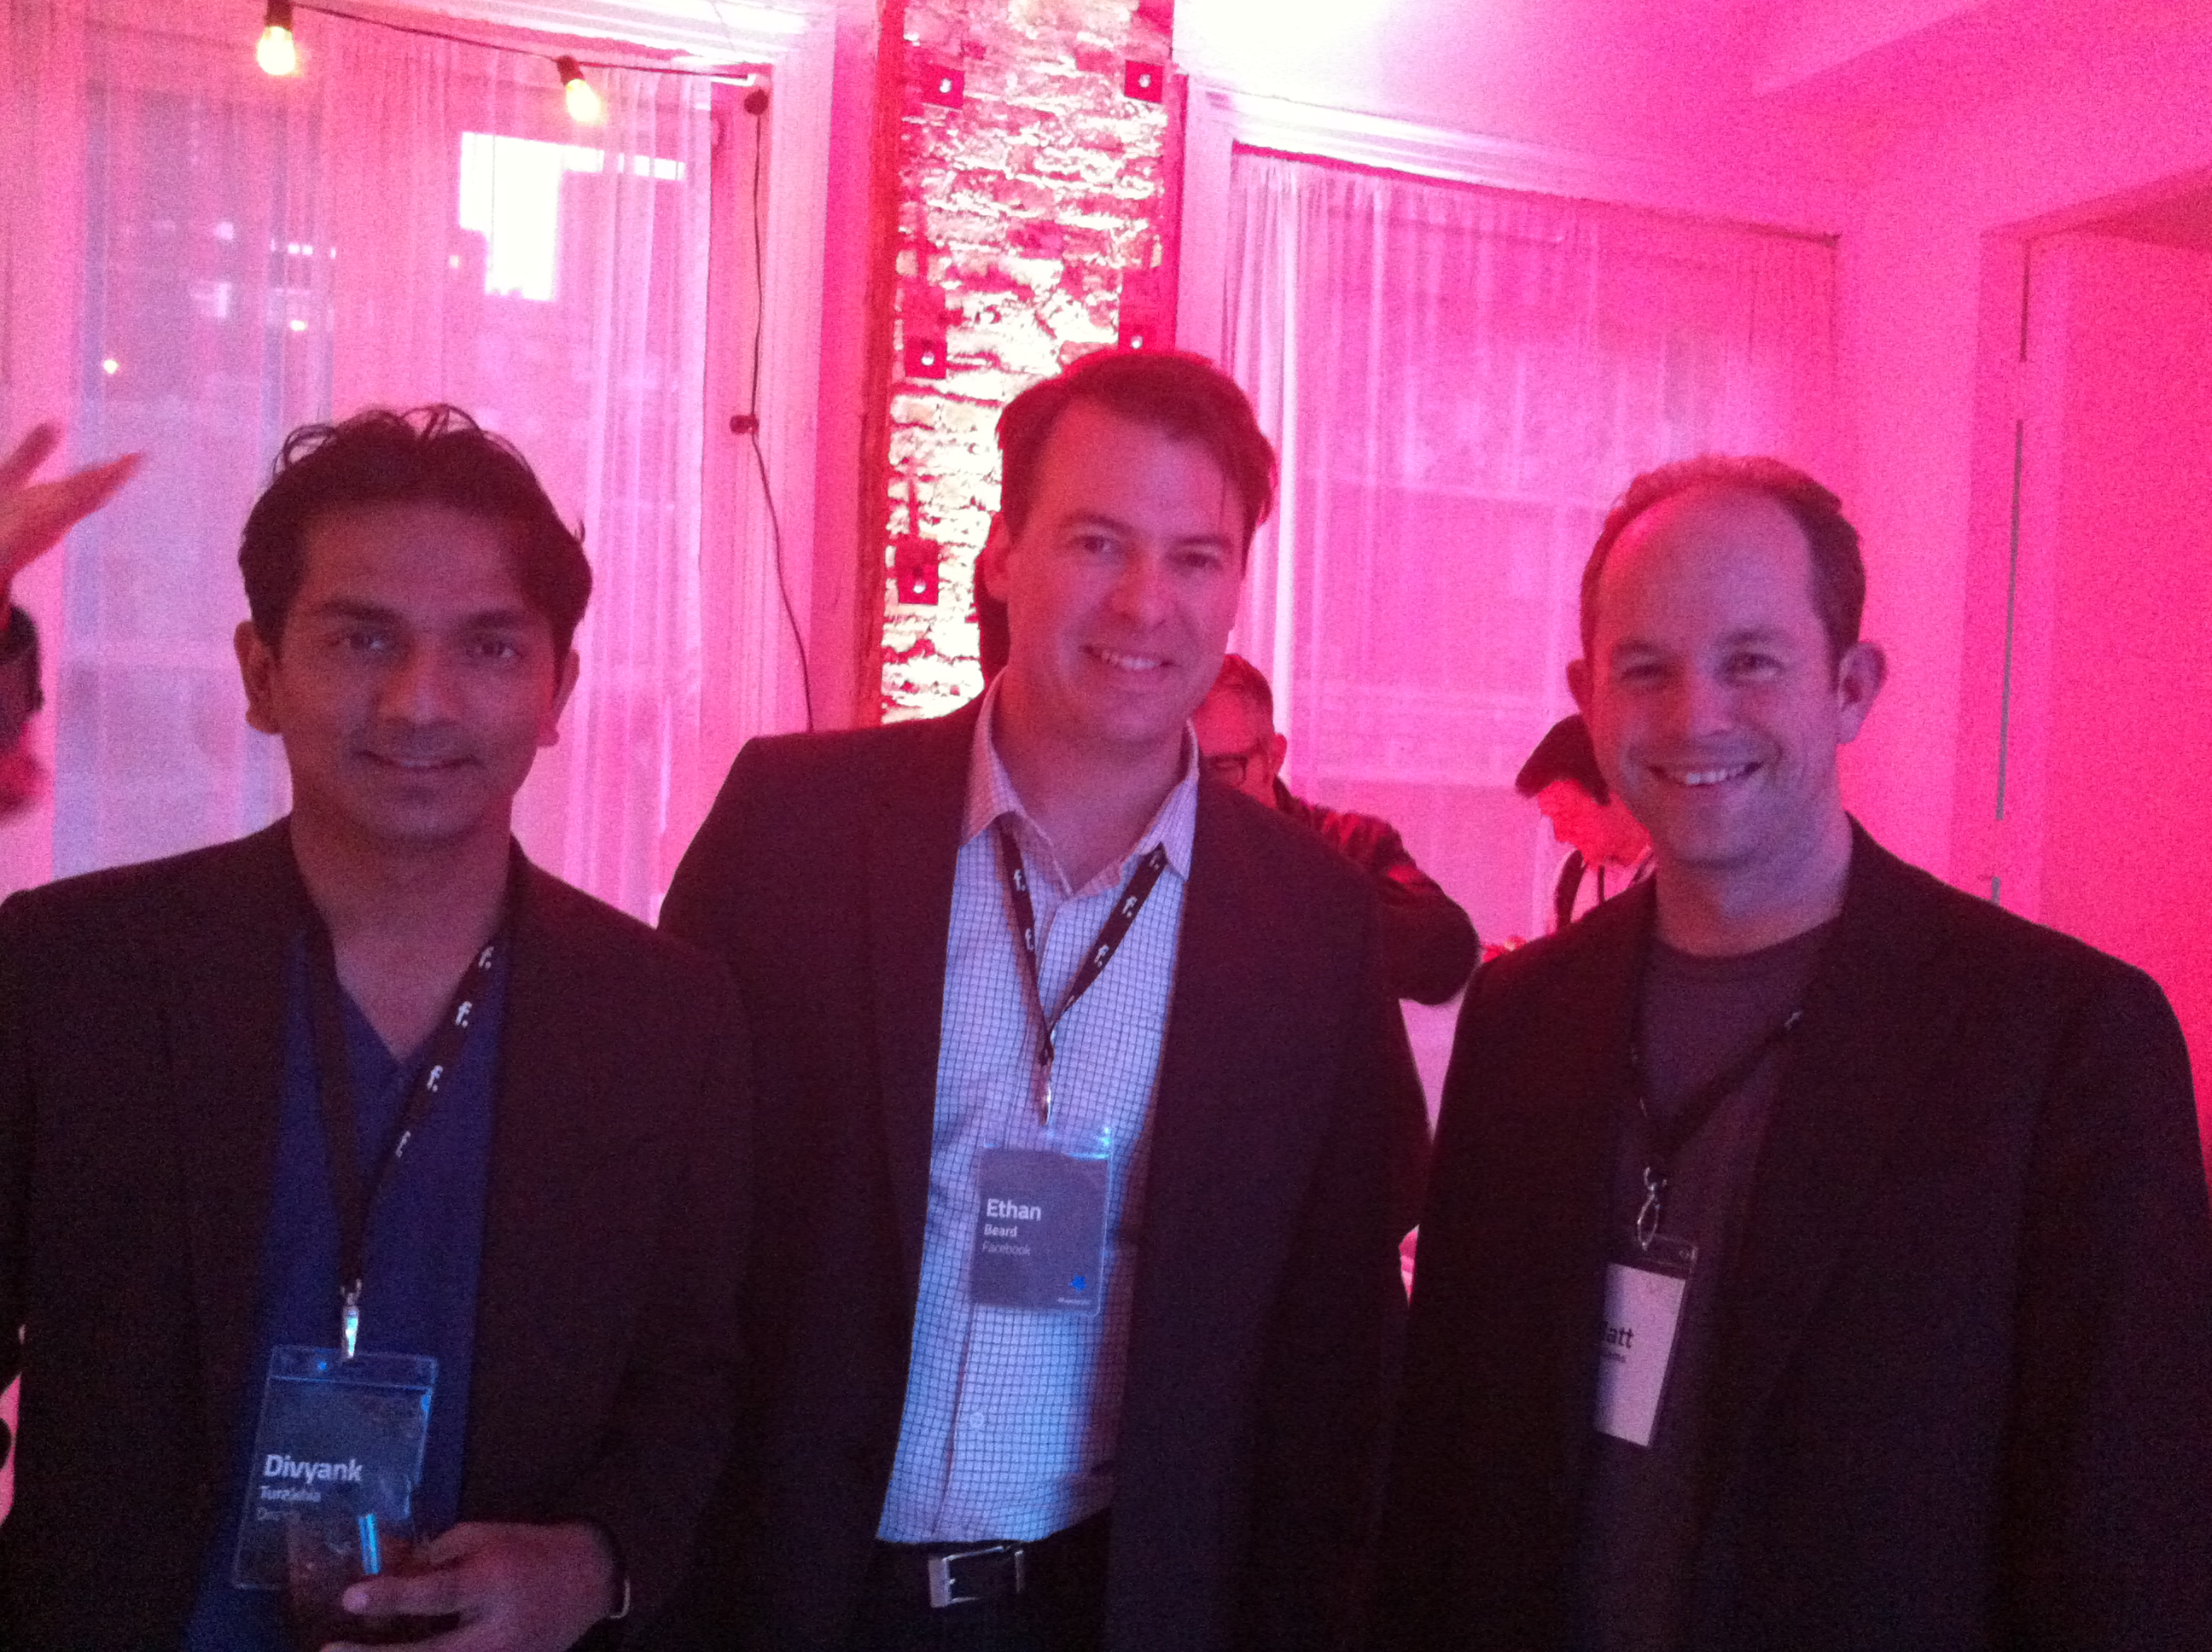 Media.net's Divyank Turakhia, Facebook's Ethan Beard and Digg's Matt Williams at Gary's Loft at F.ounders NY 2012